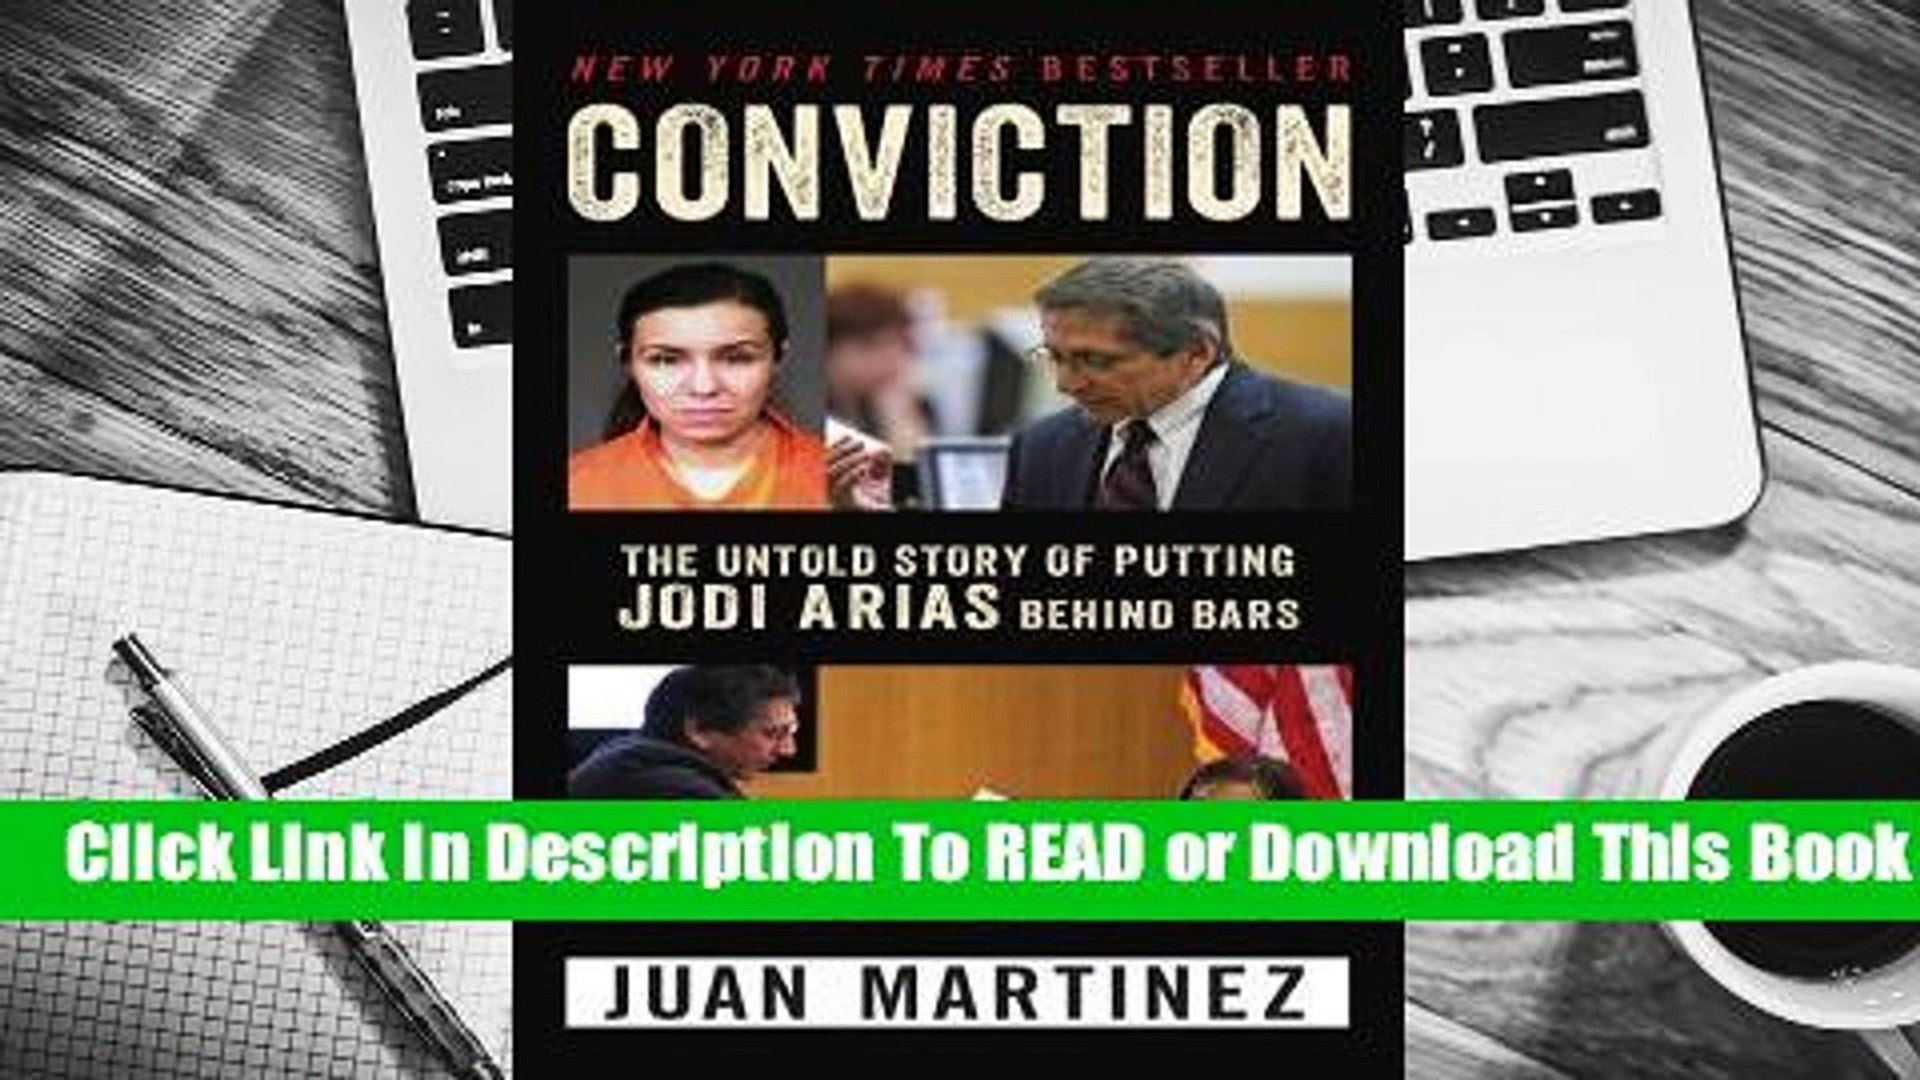 [Read] Conviction: The Untold Story of Putting Jodi Arias Behind Bars  For Full